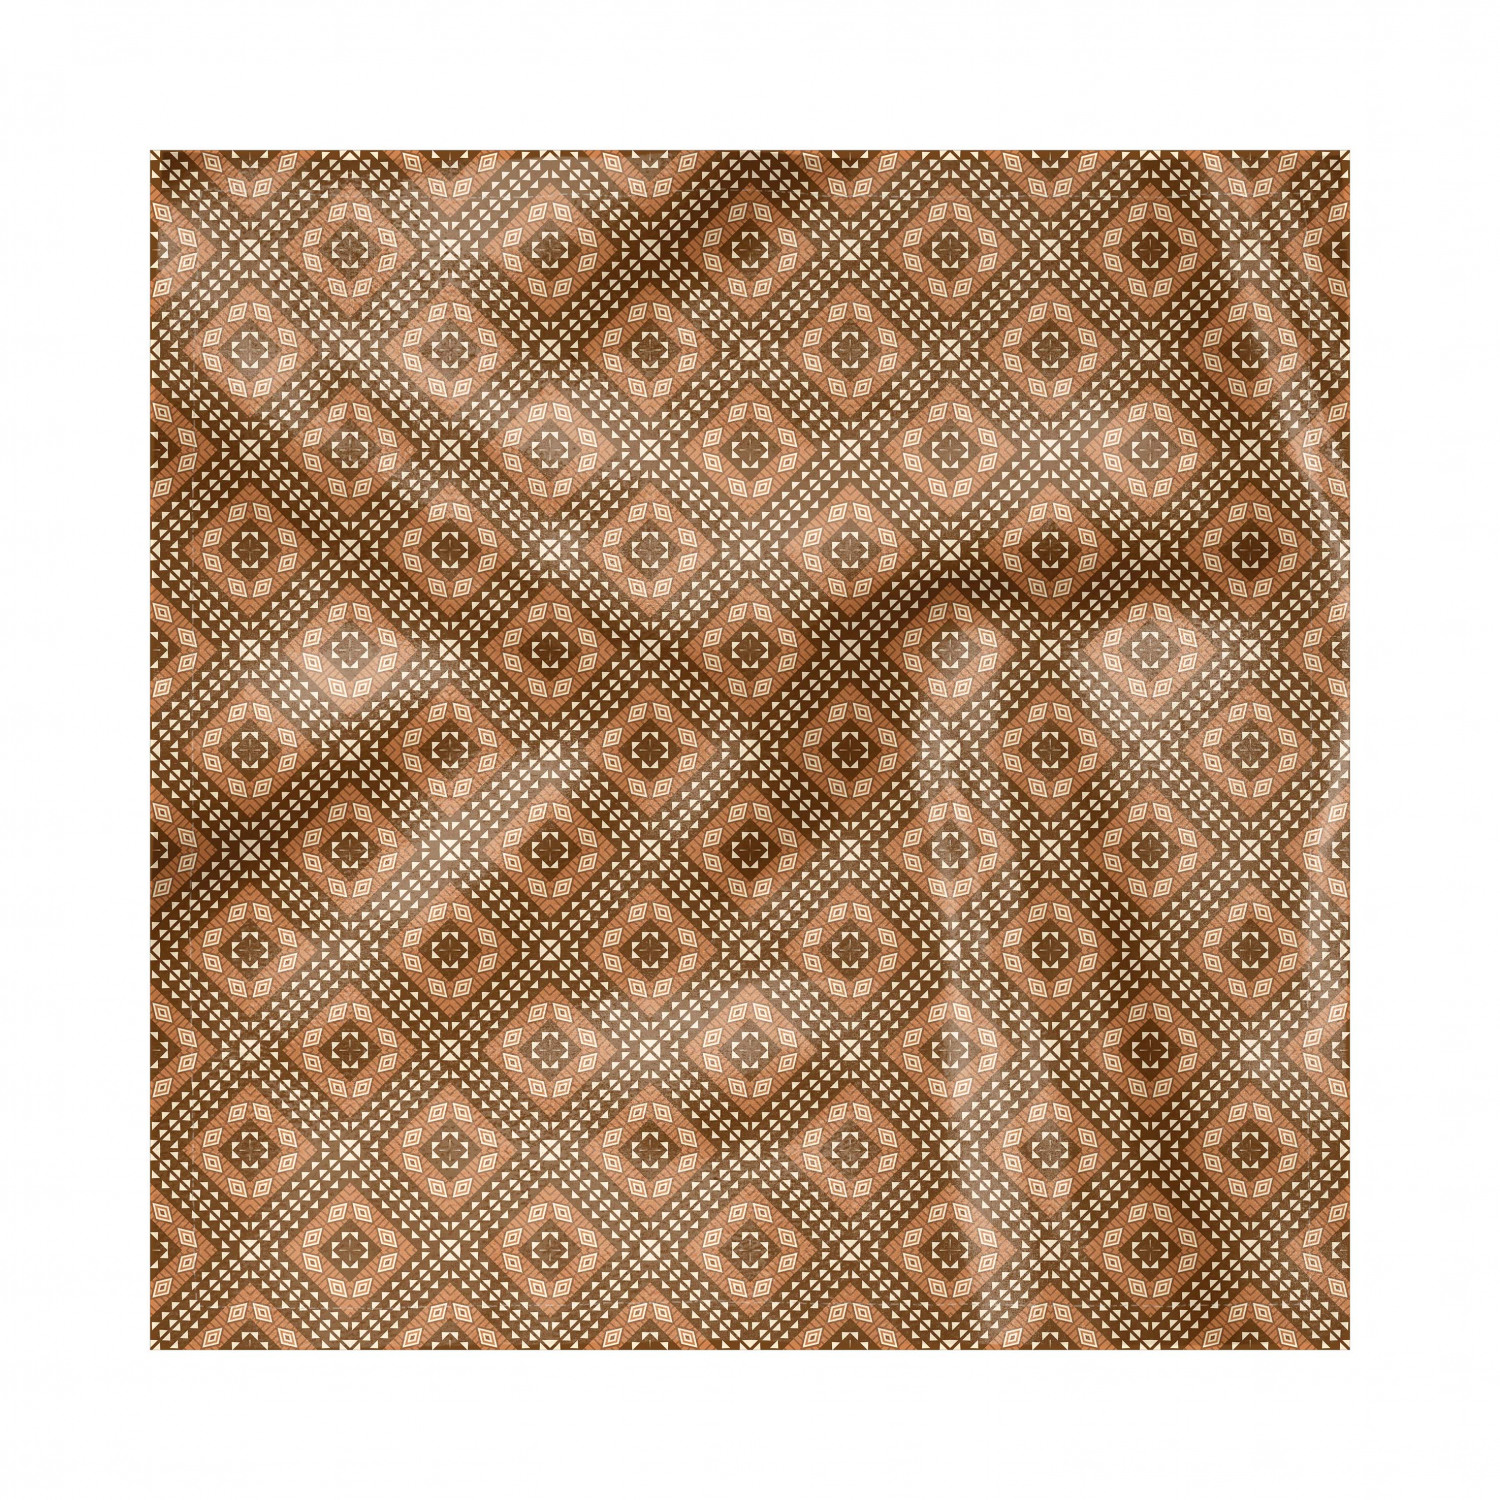 Kente Pattern Napkins Set Of 4 Traditional Motifs In Brown Shades Indigenous Culture Silky Satin Fabric For Brunch Dinner Buffet Party By Ambesonne Walmart Com Walmart Com